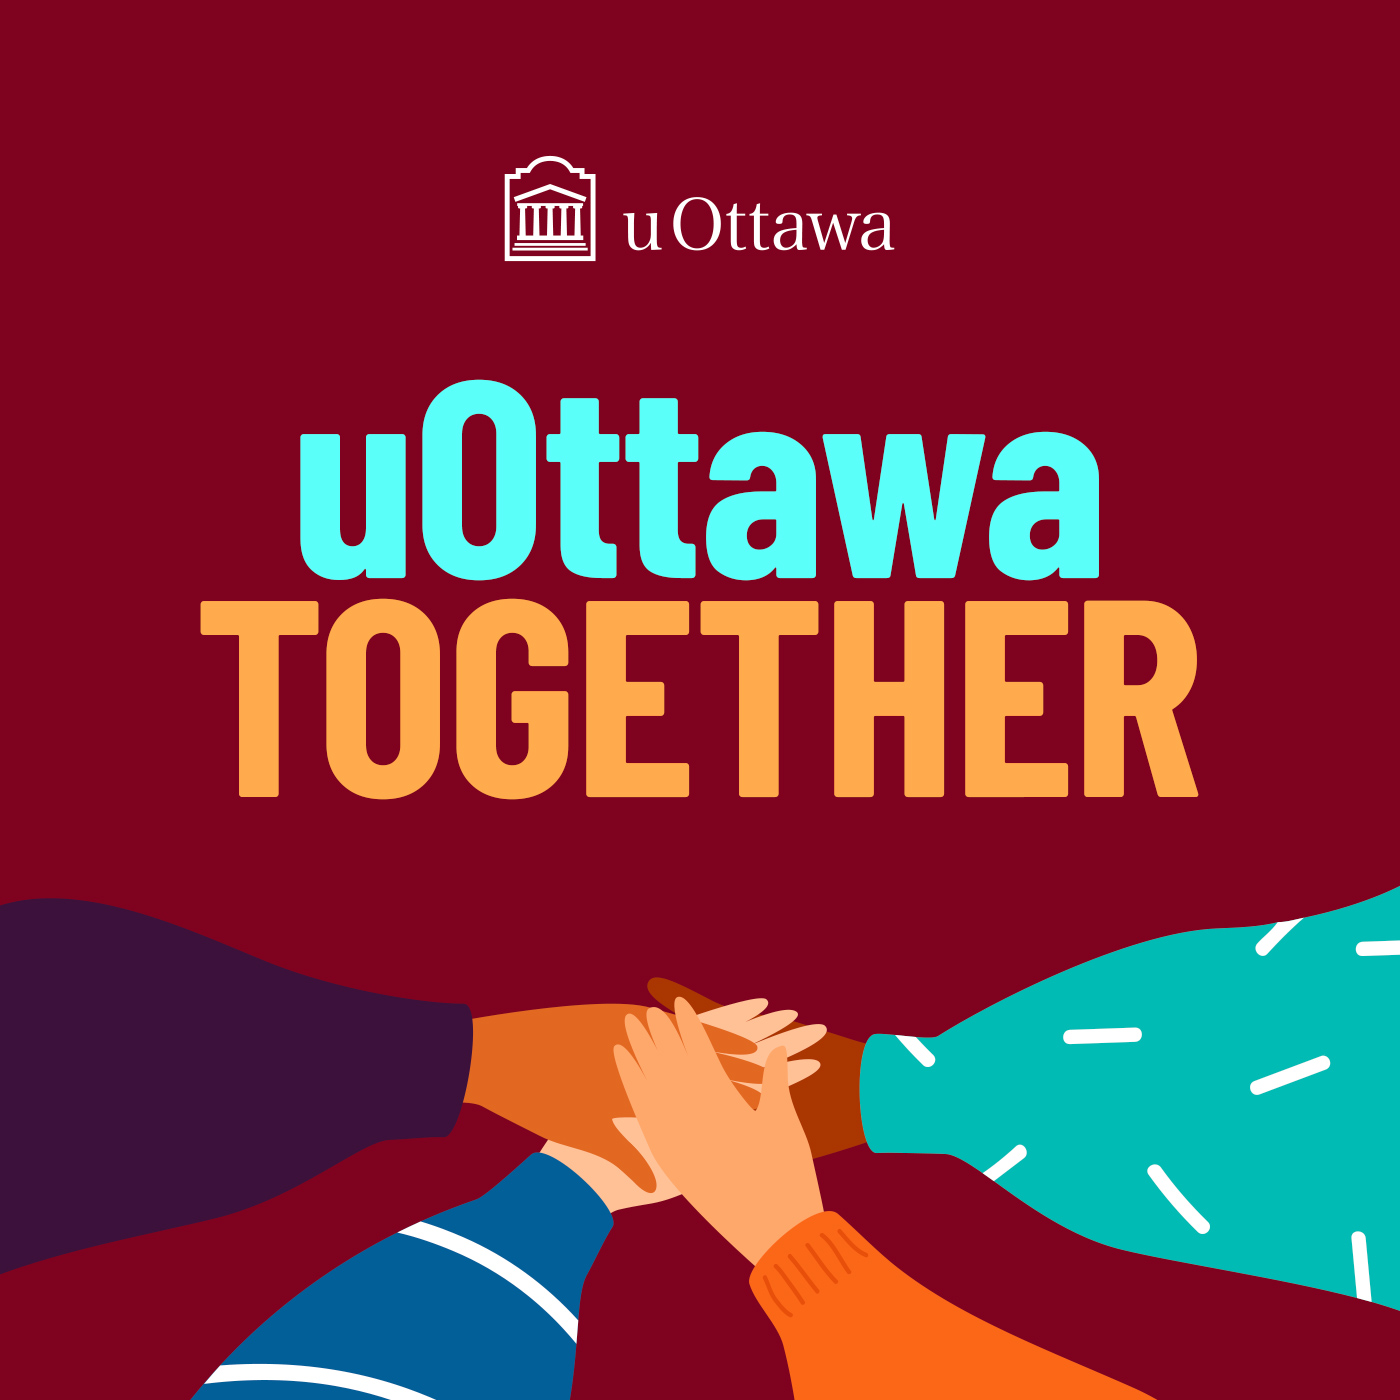 uOttawa Together. Four hands coming together.